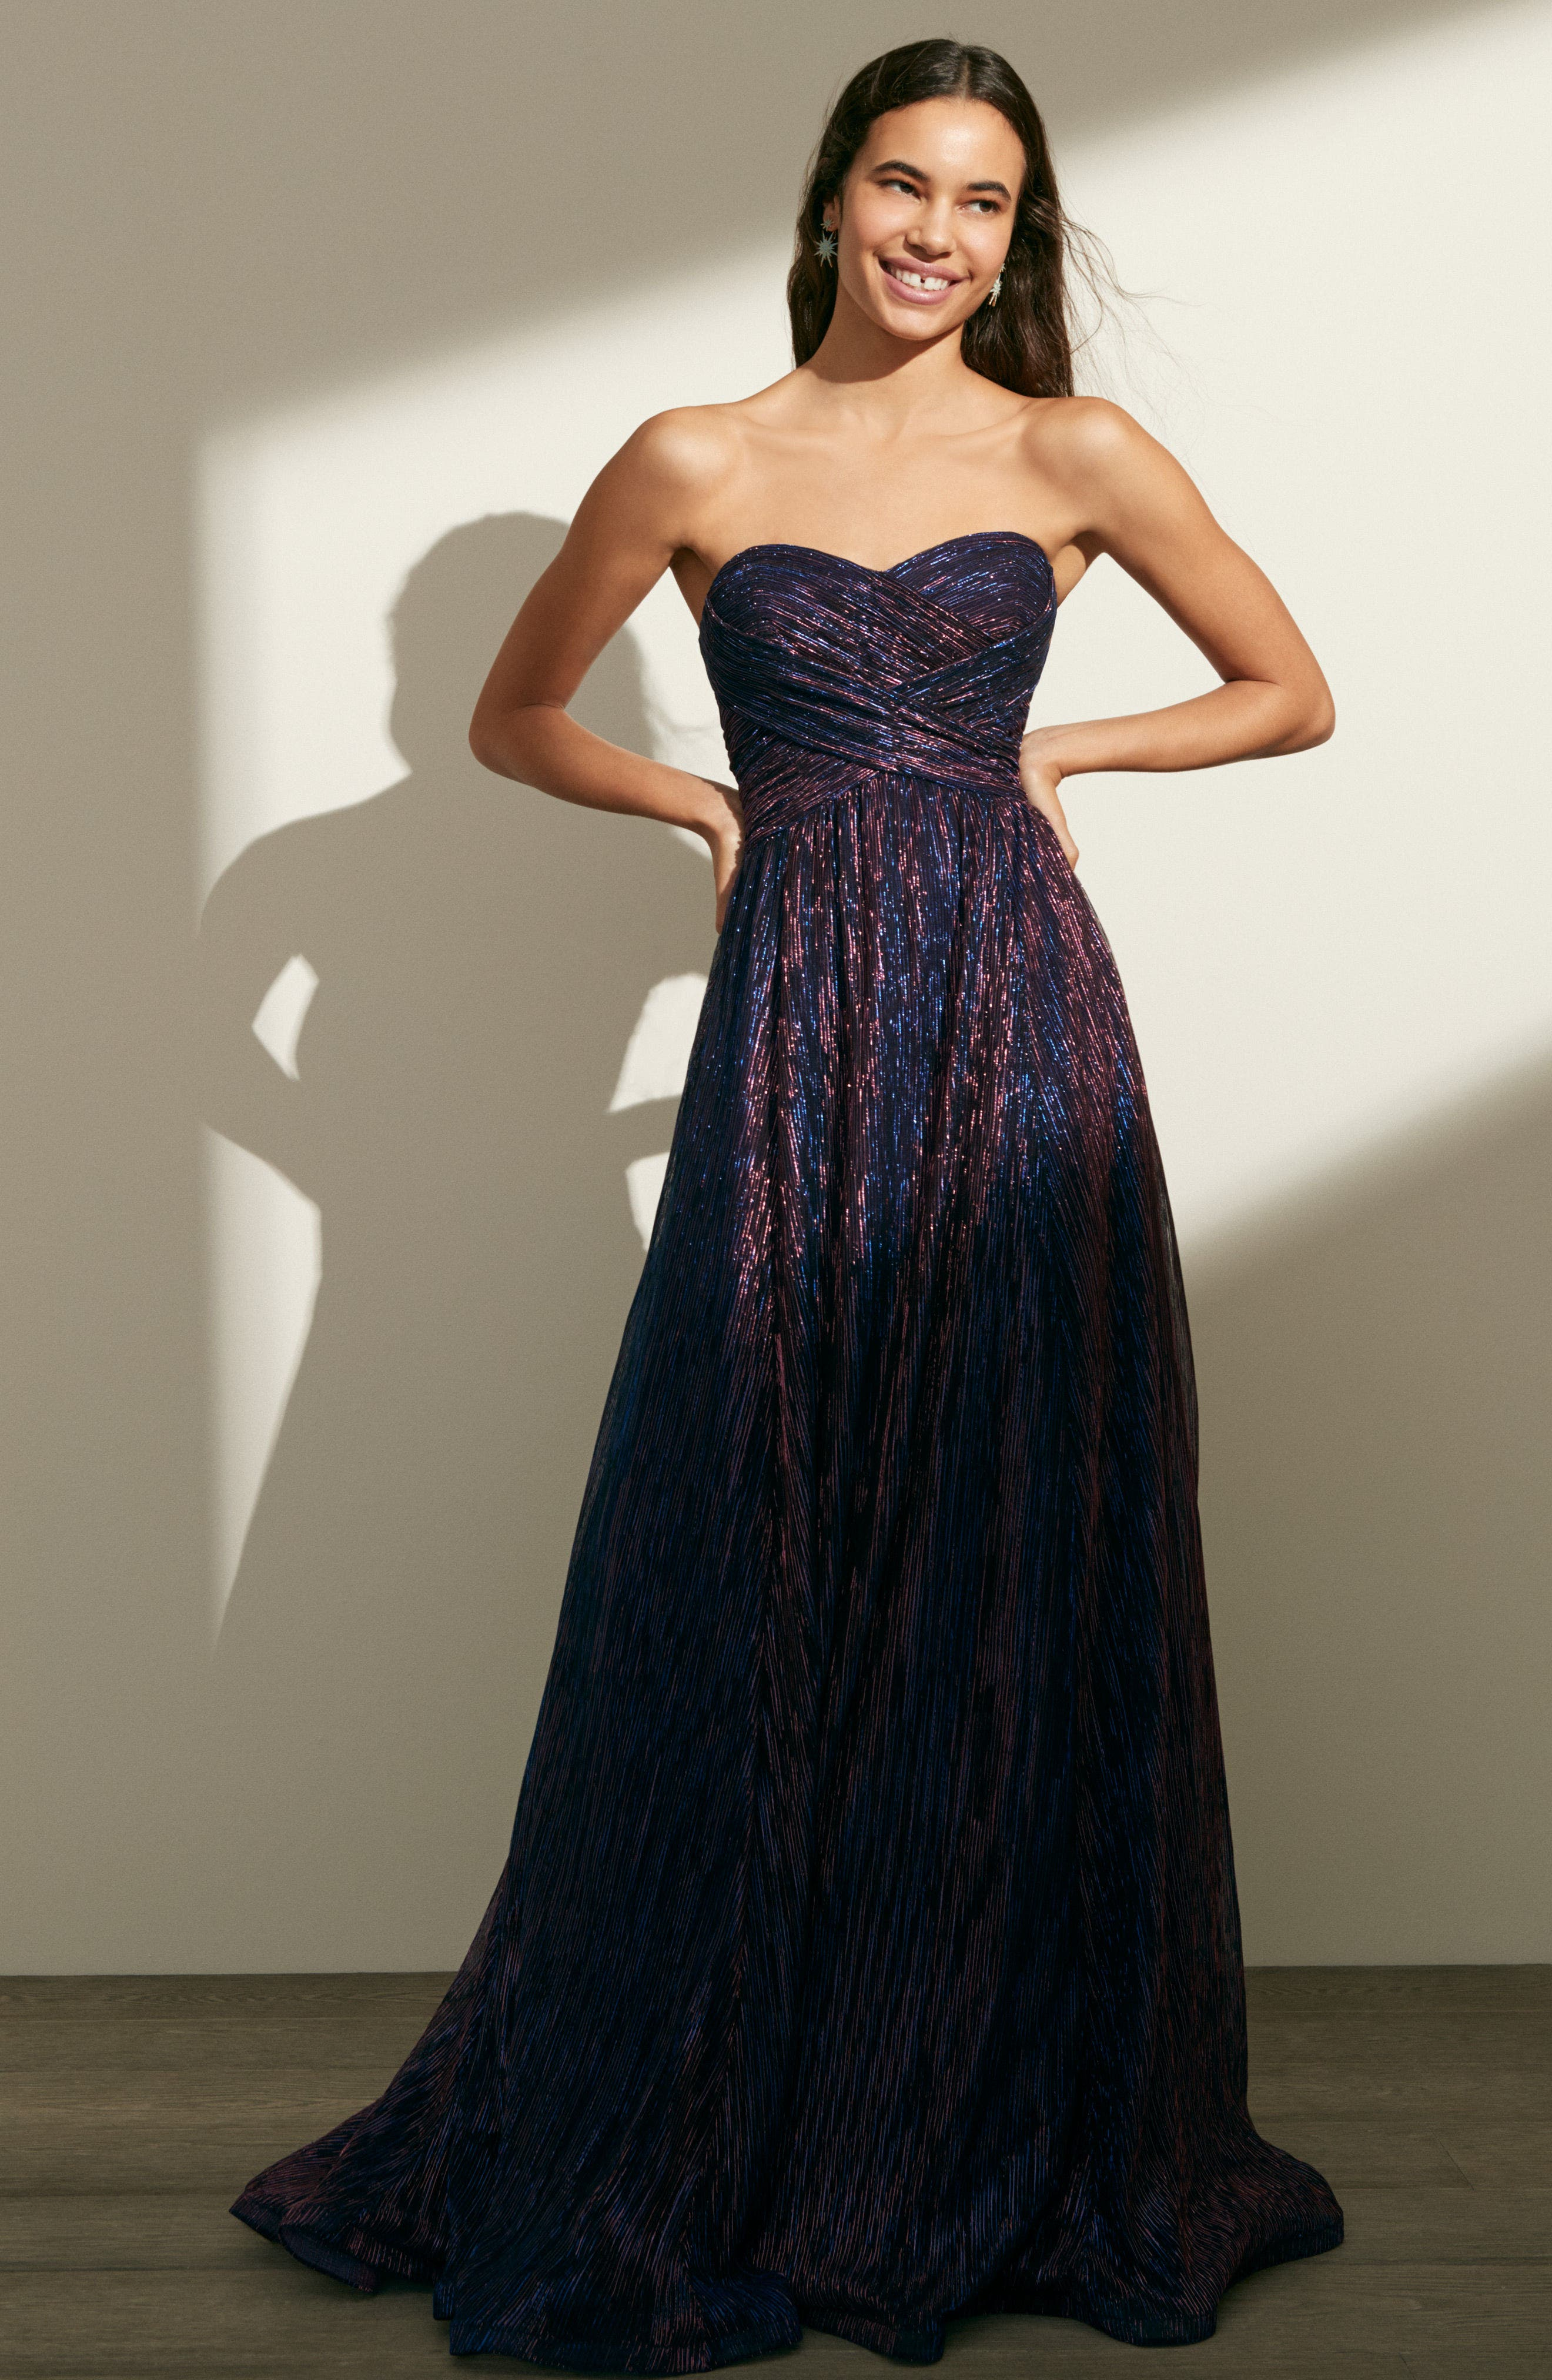 Metallic Strapless A-Line Gown,                             Alternate thumbnail 2, color,                             Purple/ Multi